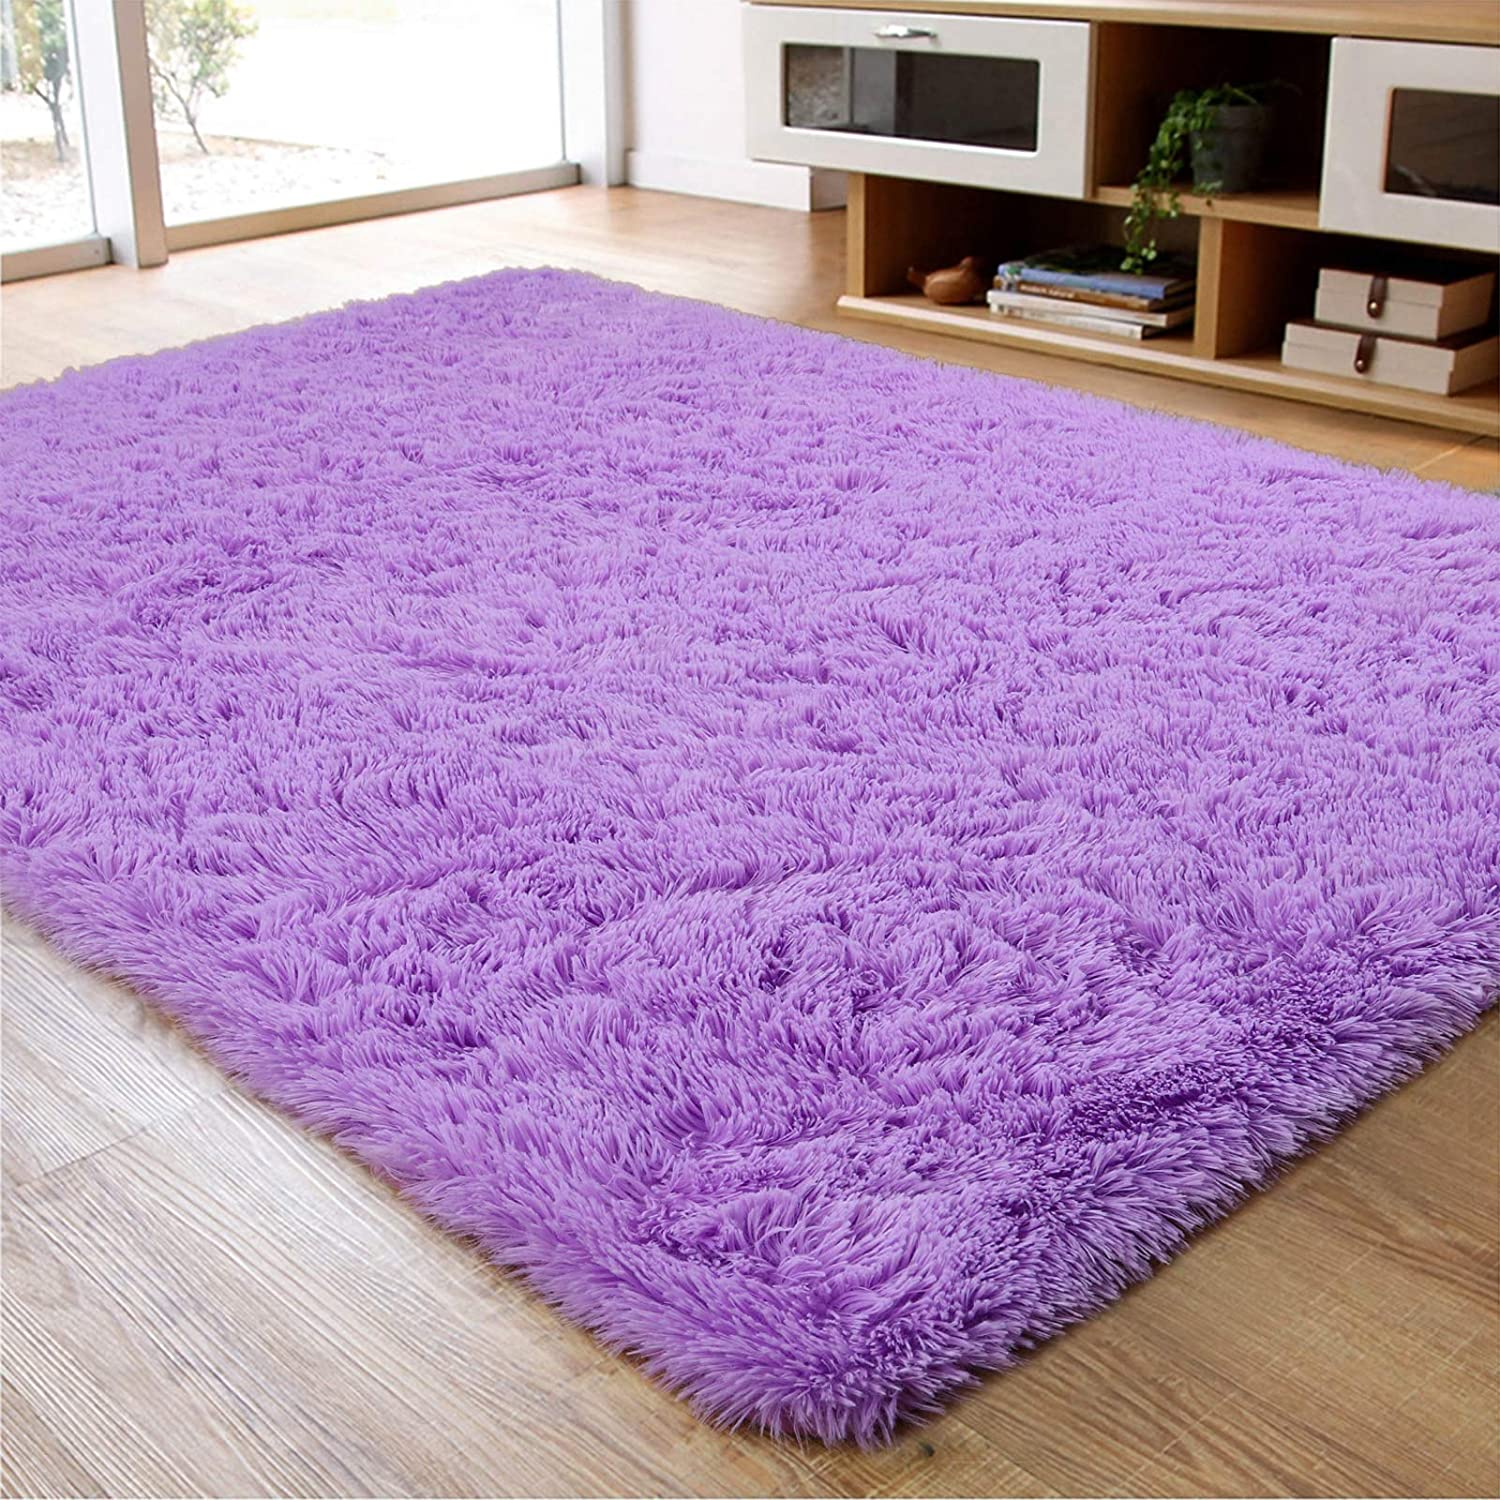 Ompaa Soft Fluffy Area Rug for Living Room Bedroom, 4x5.9 Purple Plush Shag Rugs, Fuzzy Shaggy Accent Carpets for Kids Girls Rooms, Modern Apartment Nursery Dorm Indoor Furry Decor